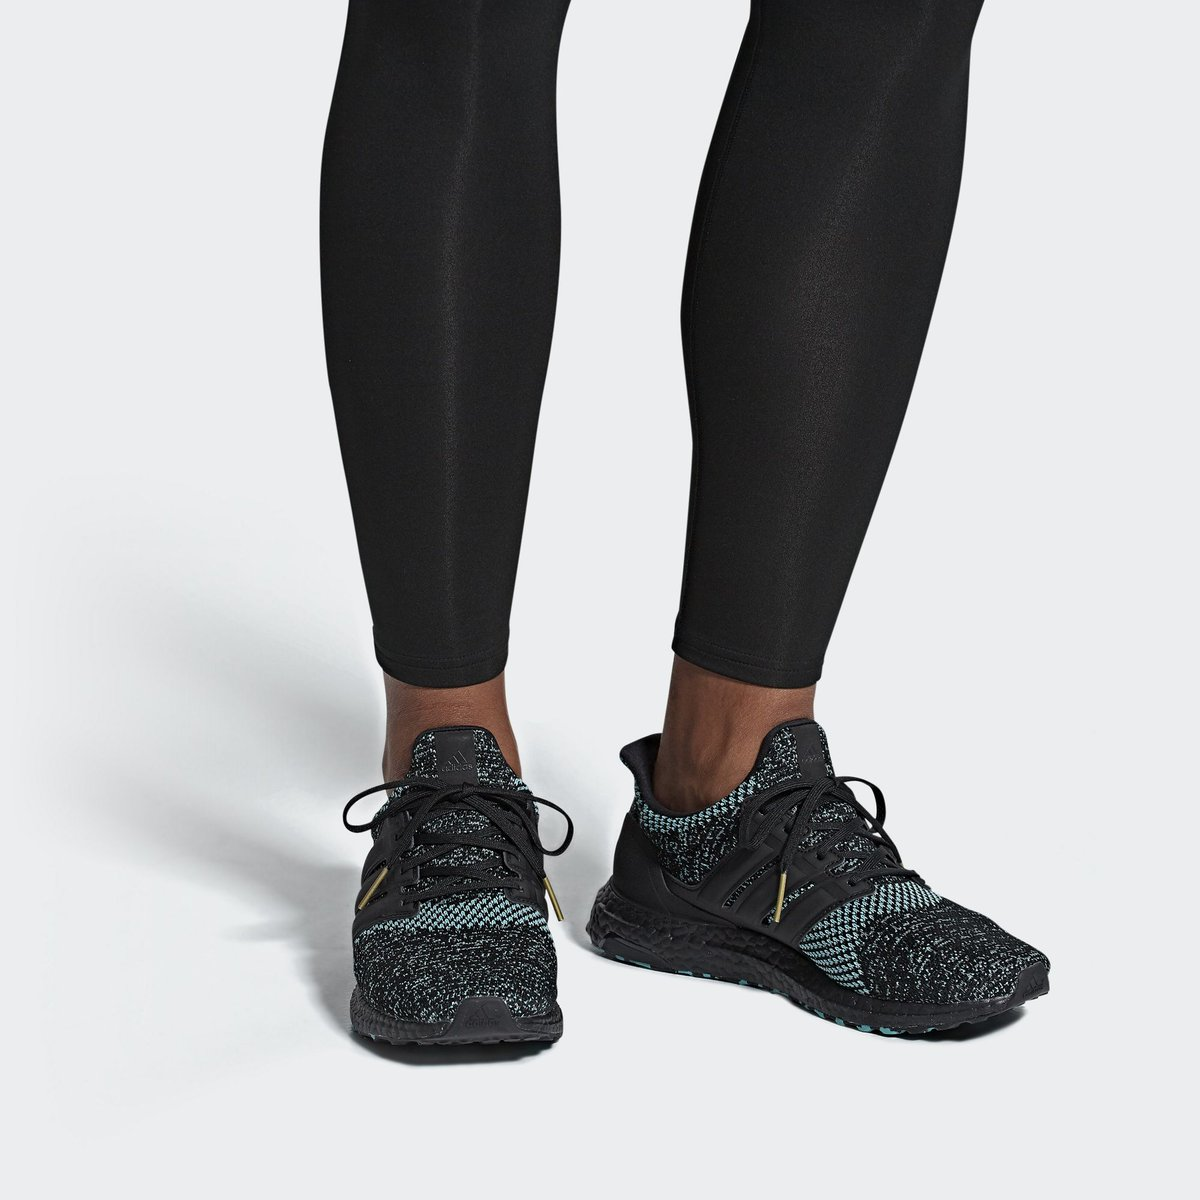 new style 43d46 21809 adidas alerts on Twitter